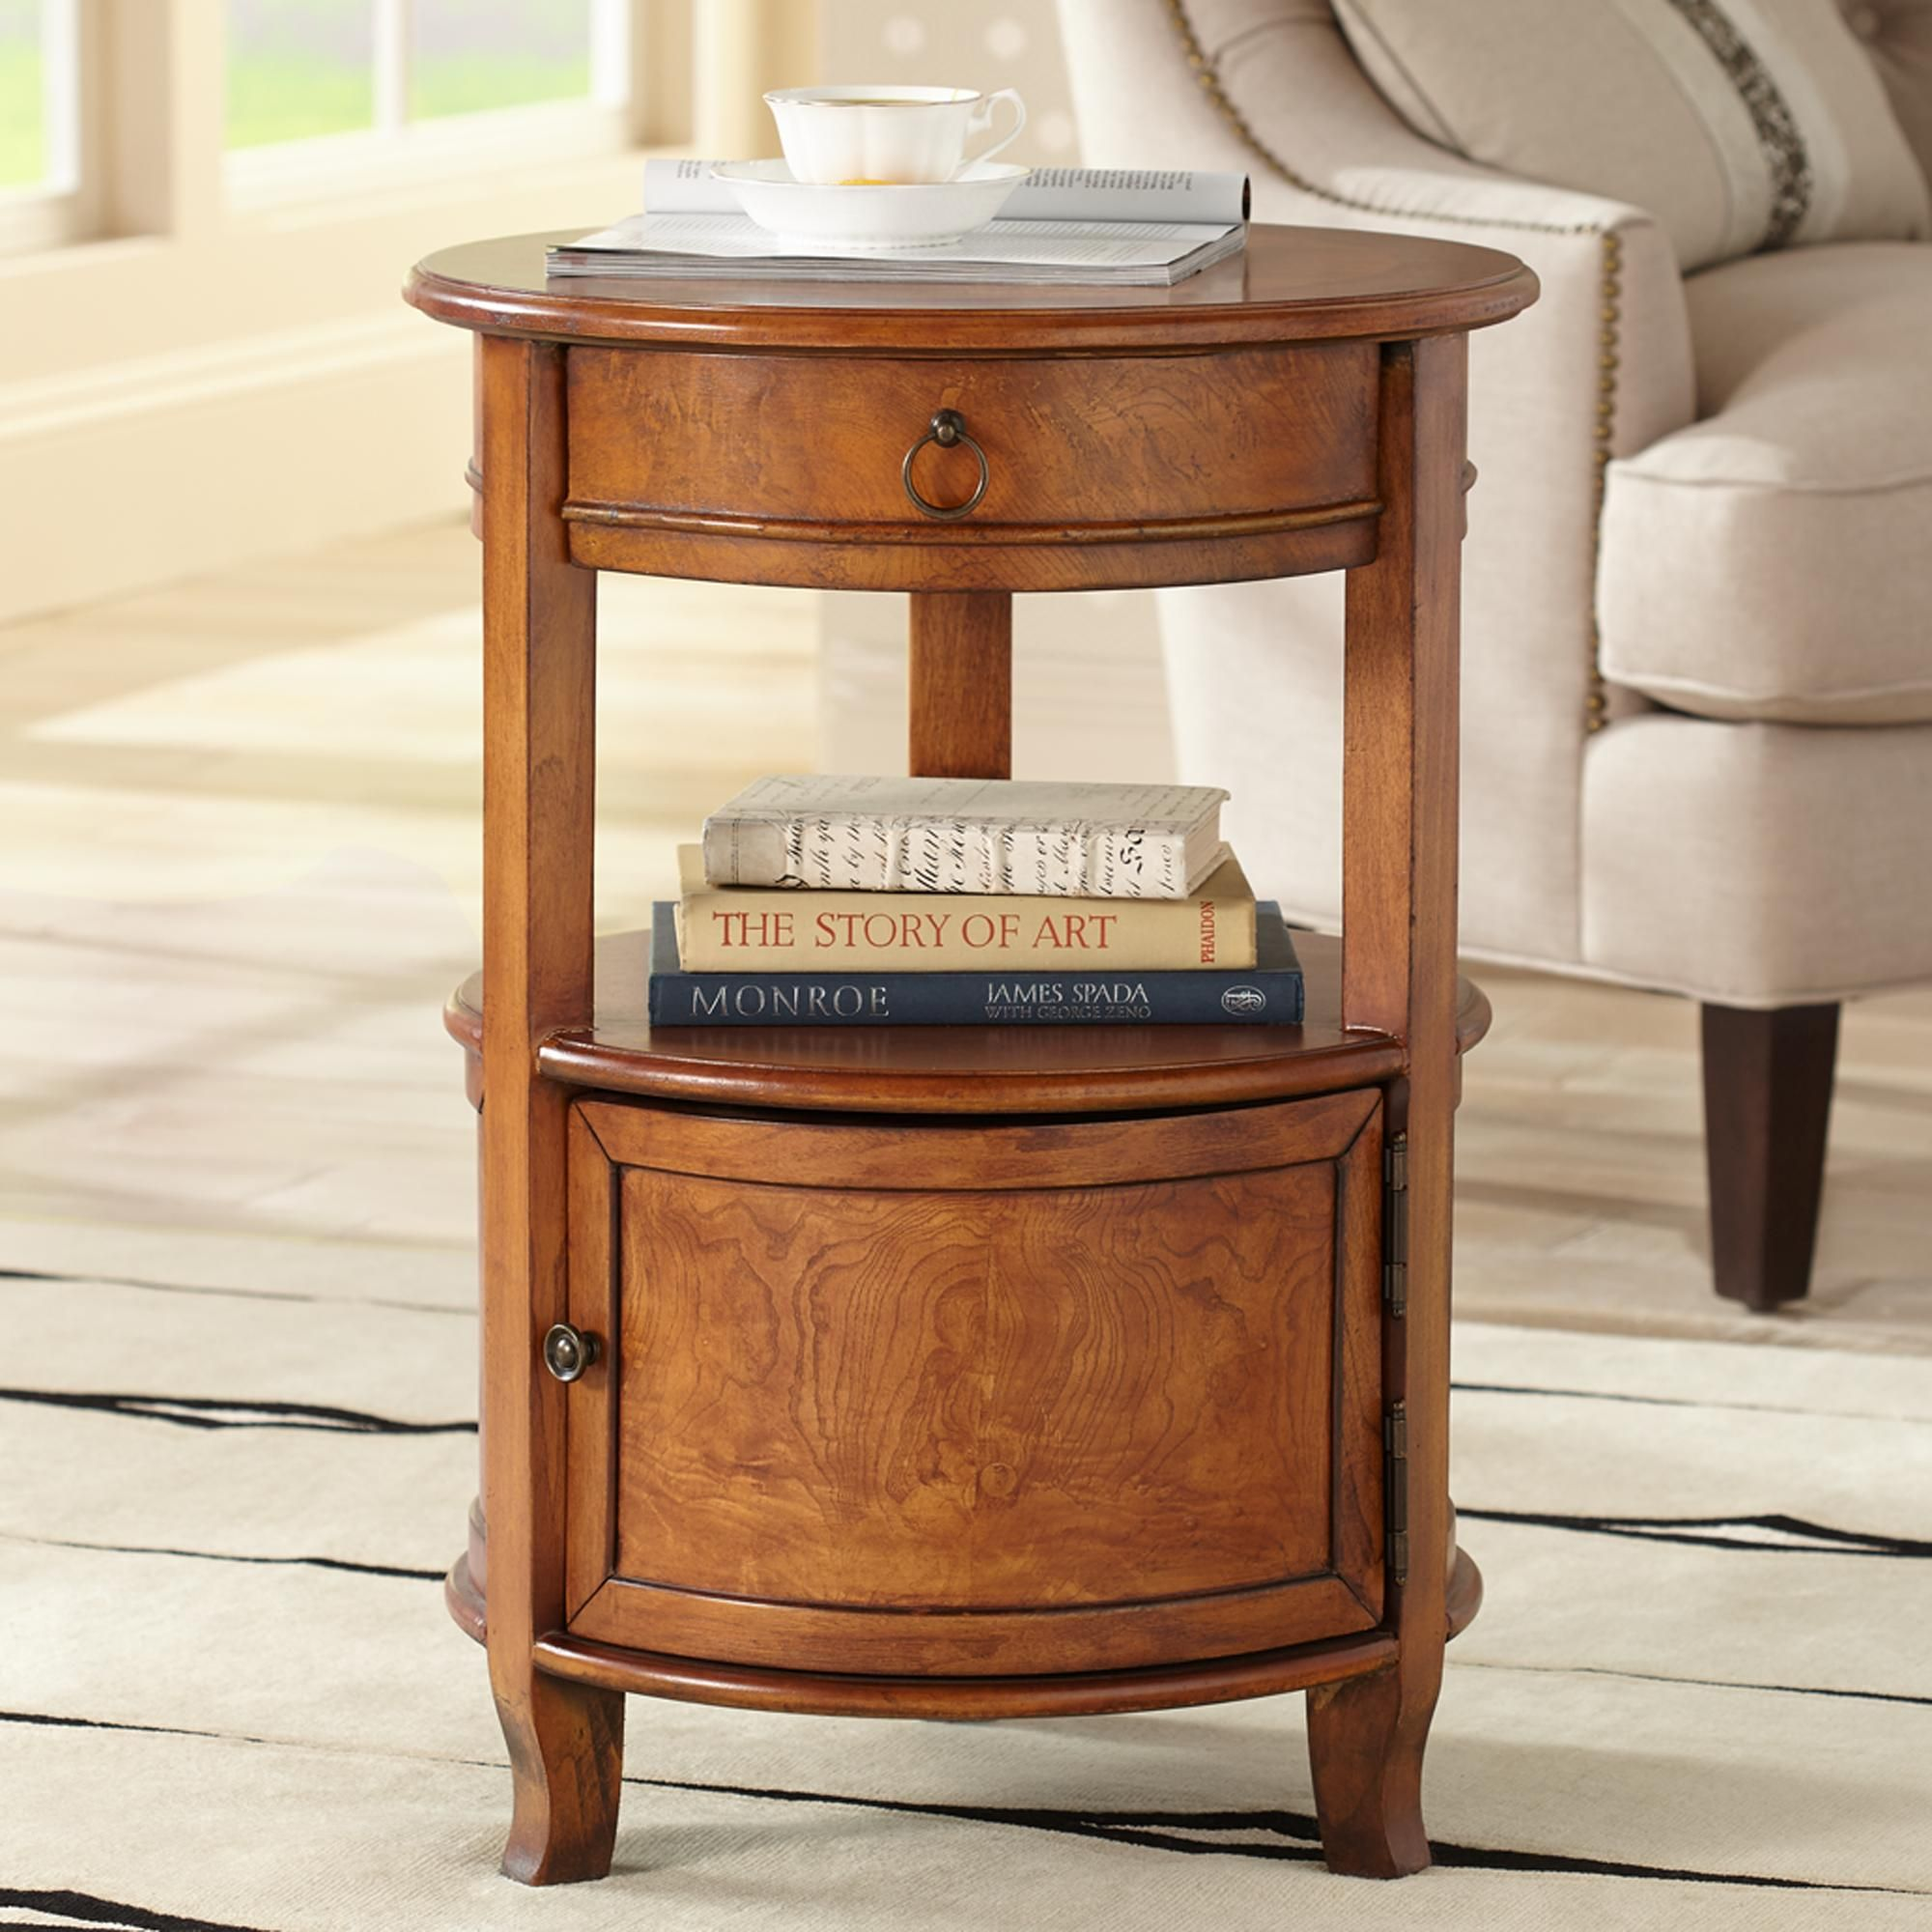 kendall cherry round accent table maison living room wood tables long foyer pool covers bunnings metal bookshelf reading lamp eero aarnio ball chair threshold windham coffee